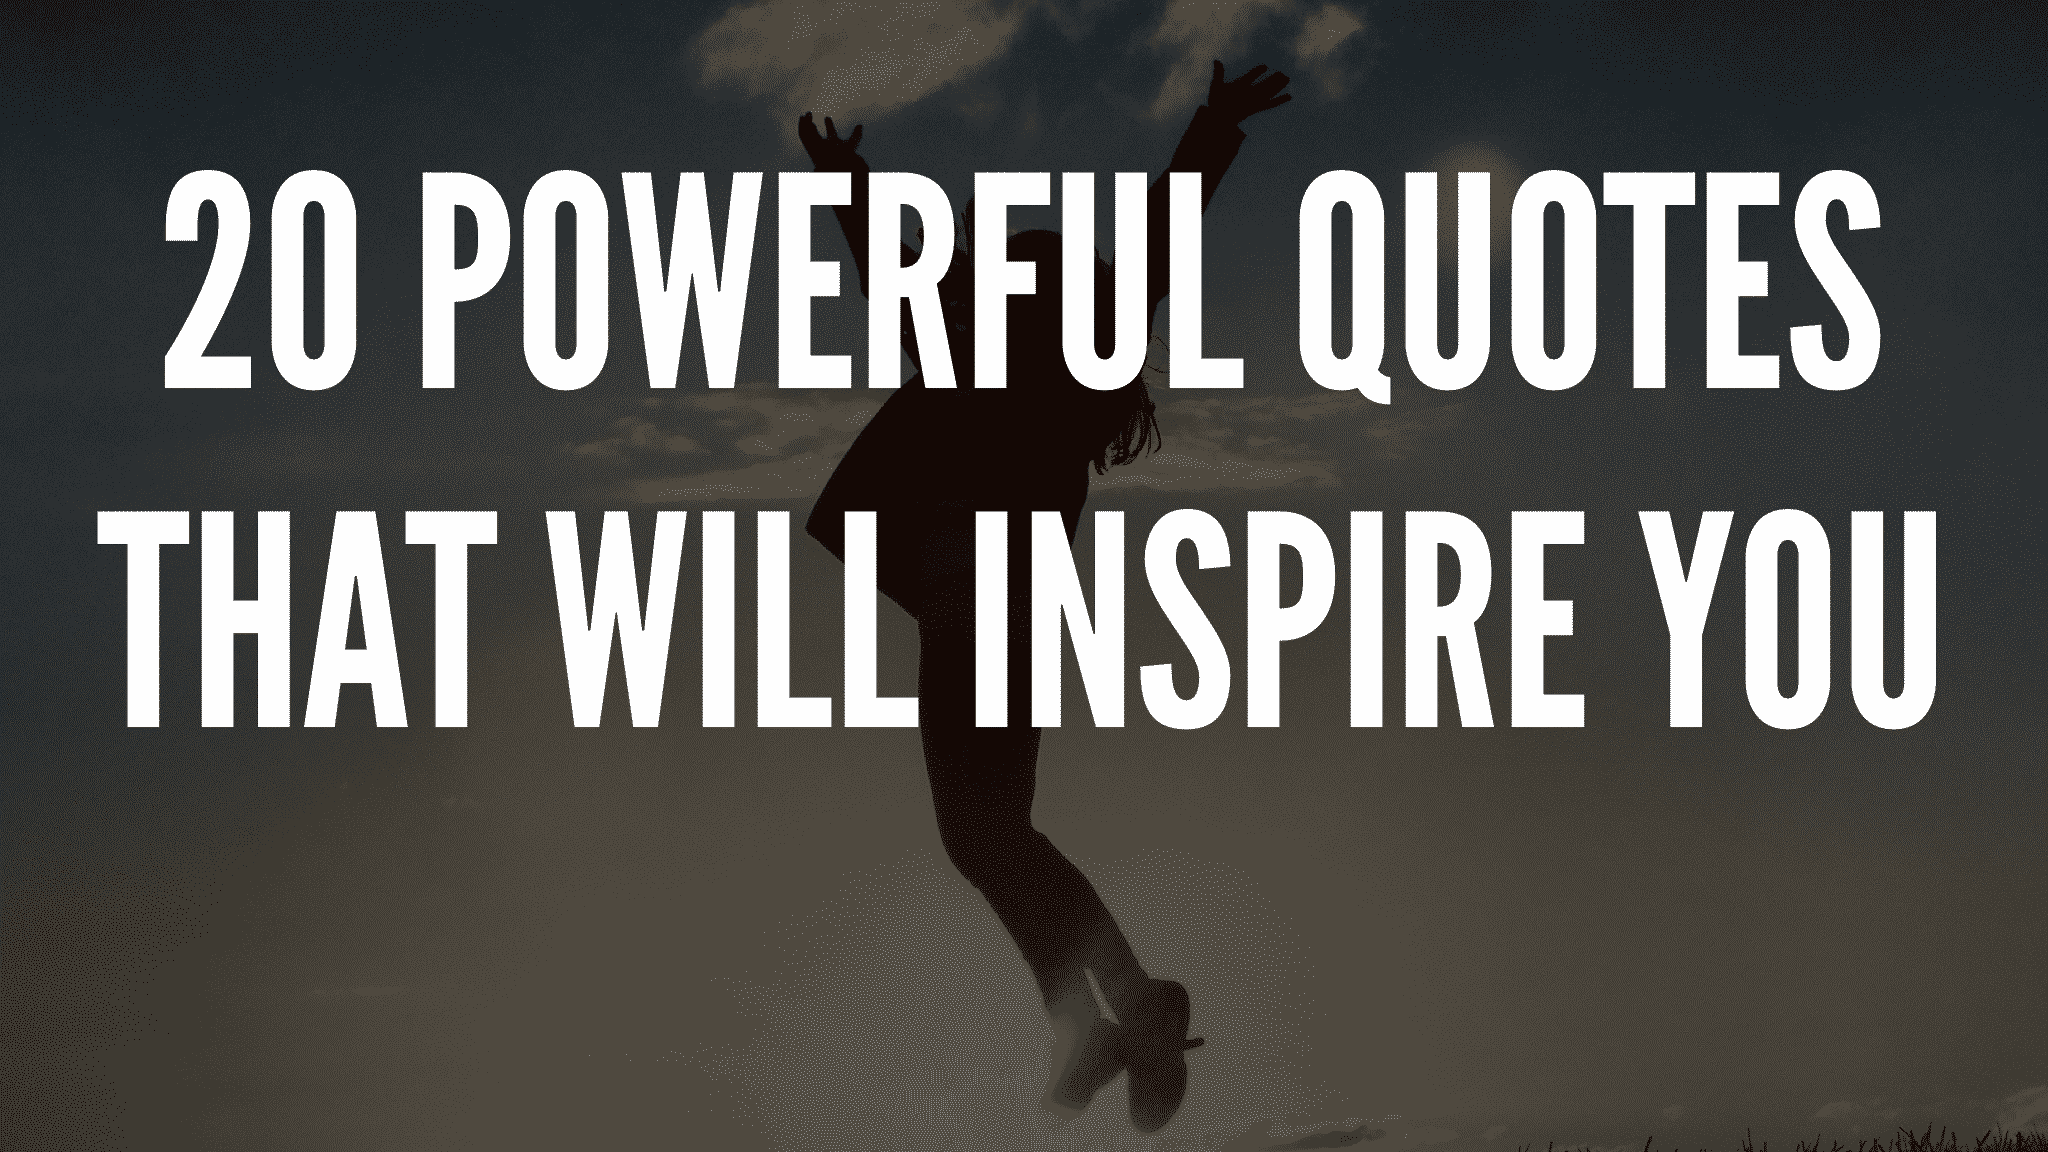 20 Powerful Quotes That Will Inspire You